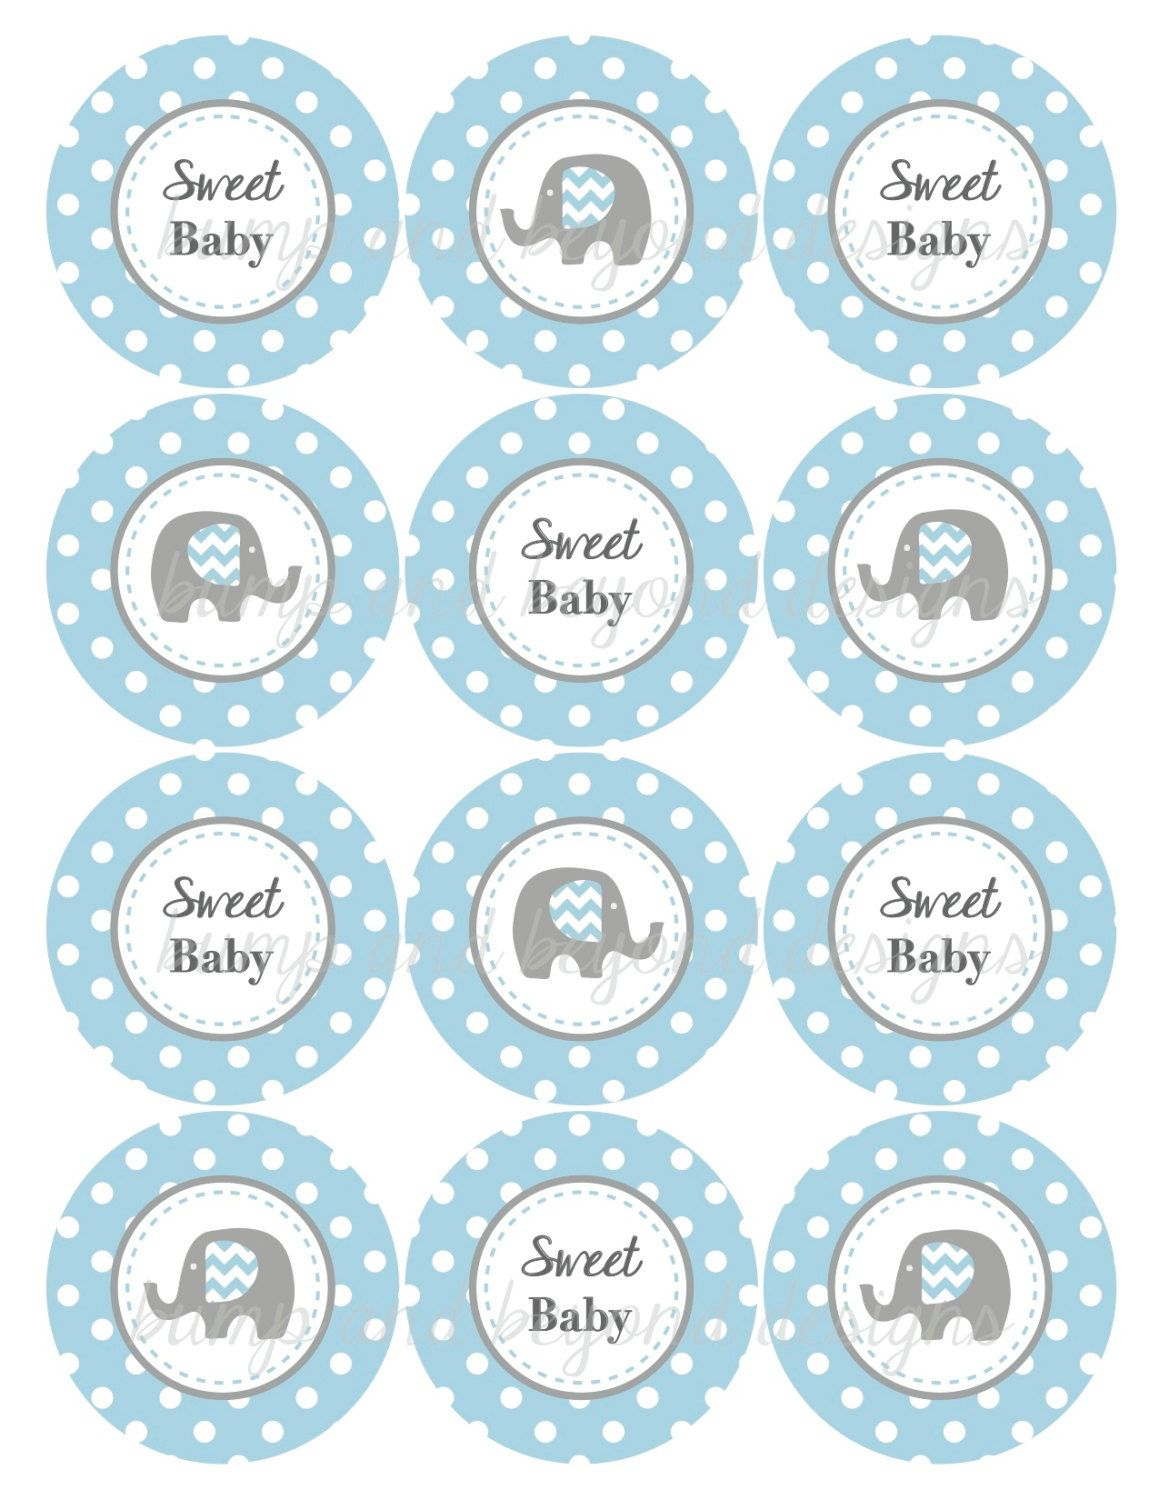 Elephant Baby Shower Ideas For A Boy - Google Search | Stuff To Buy - Free Printable Elephant Baby Shower